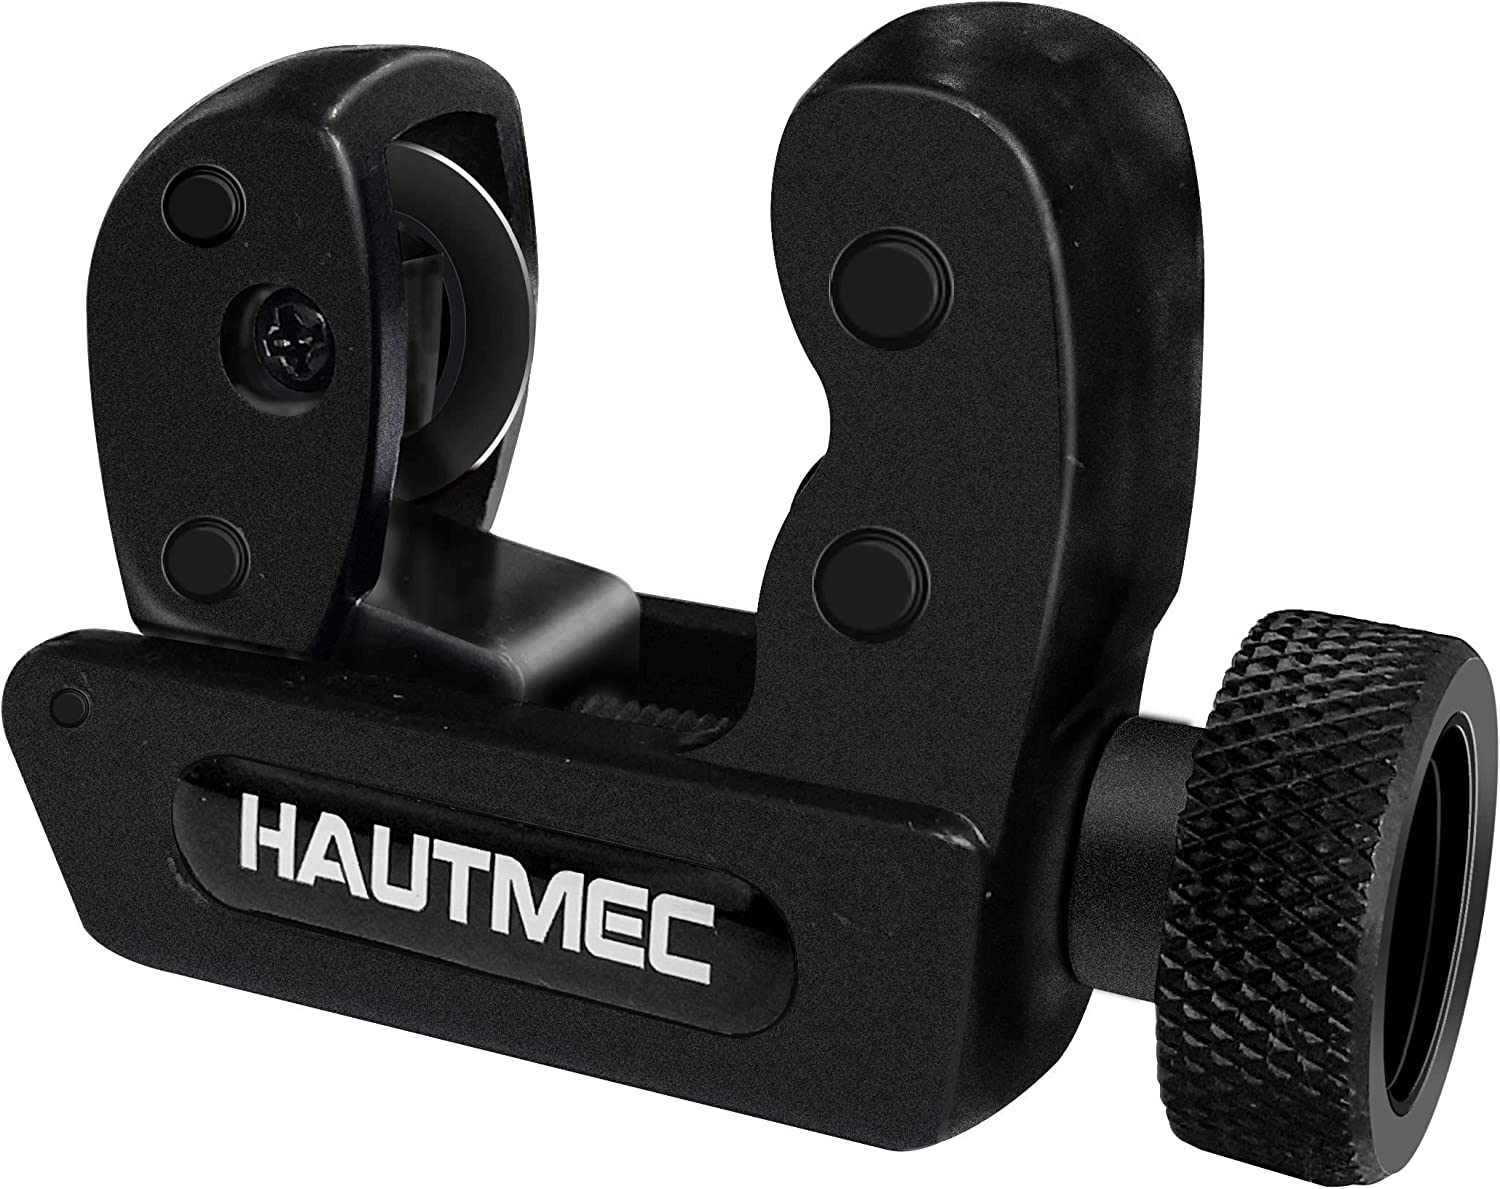 Hautmec Pro Compact Heavy Duty Mini Tube Cutti With New Attention brand item Cutter Large